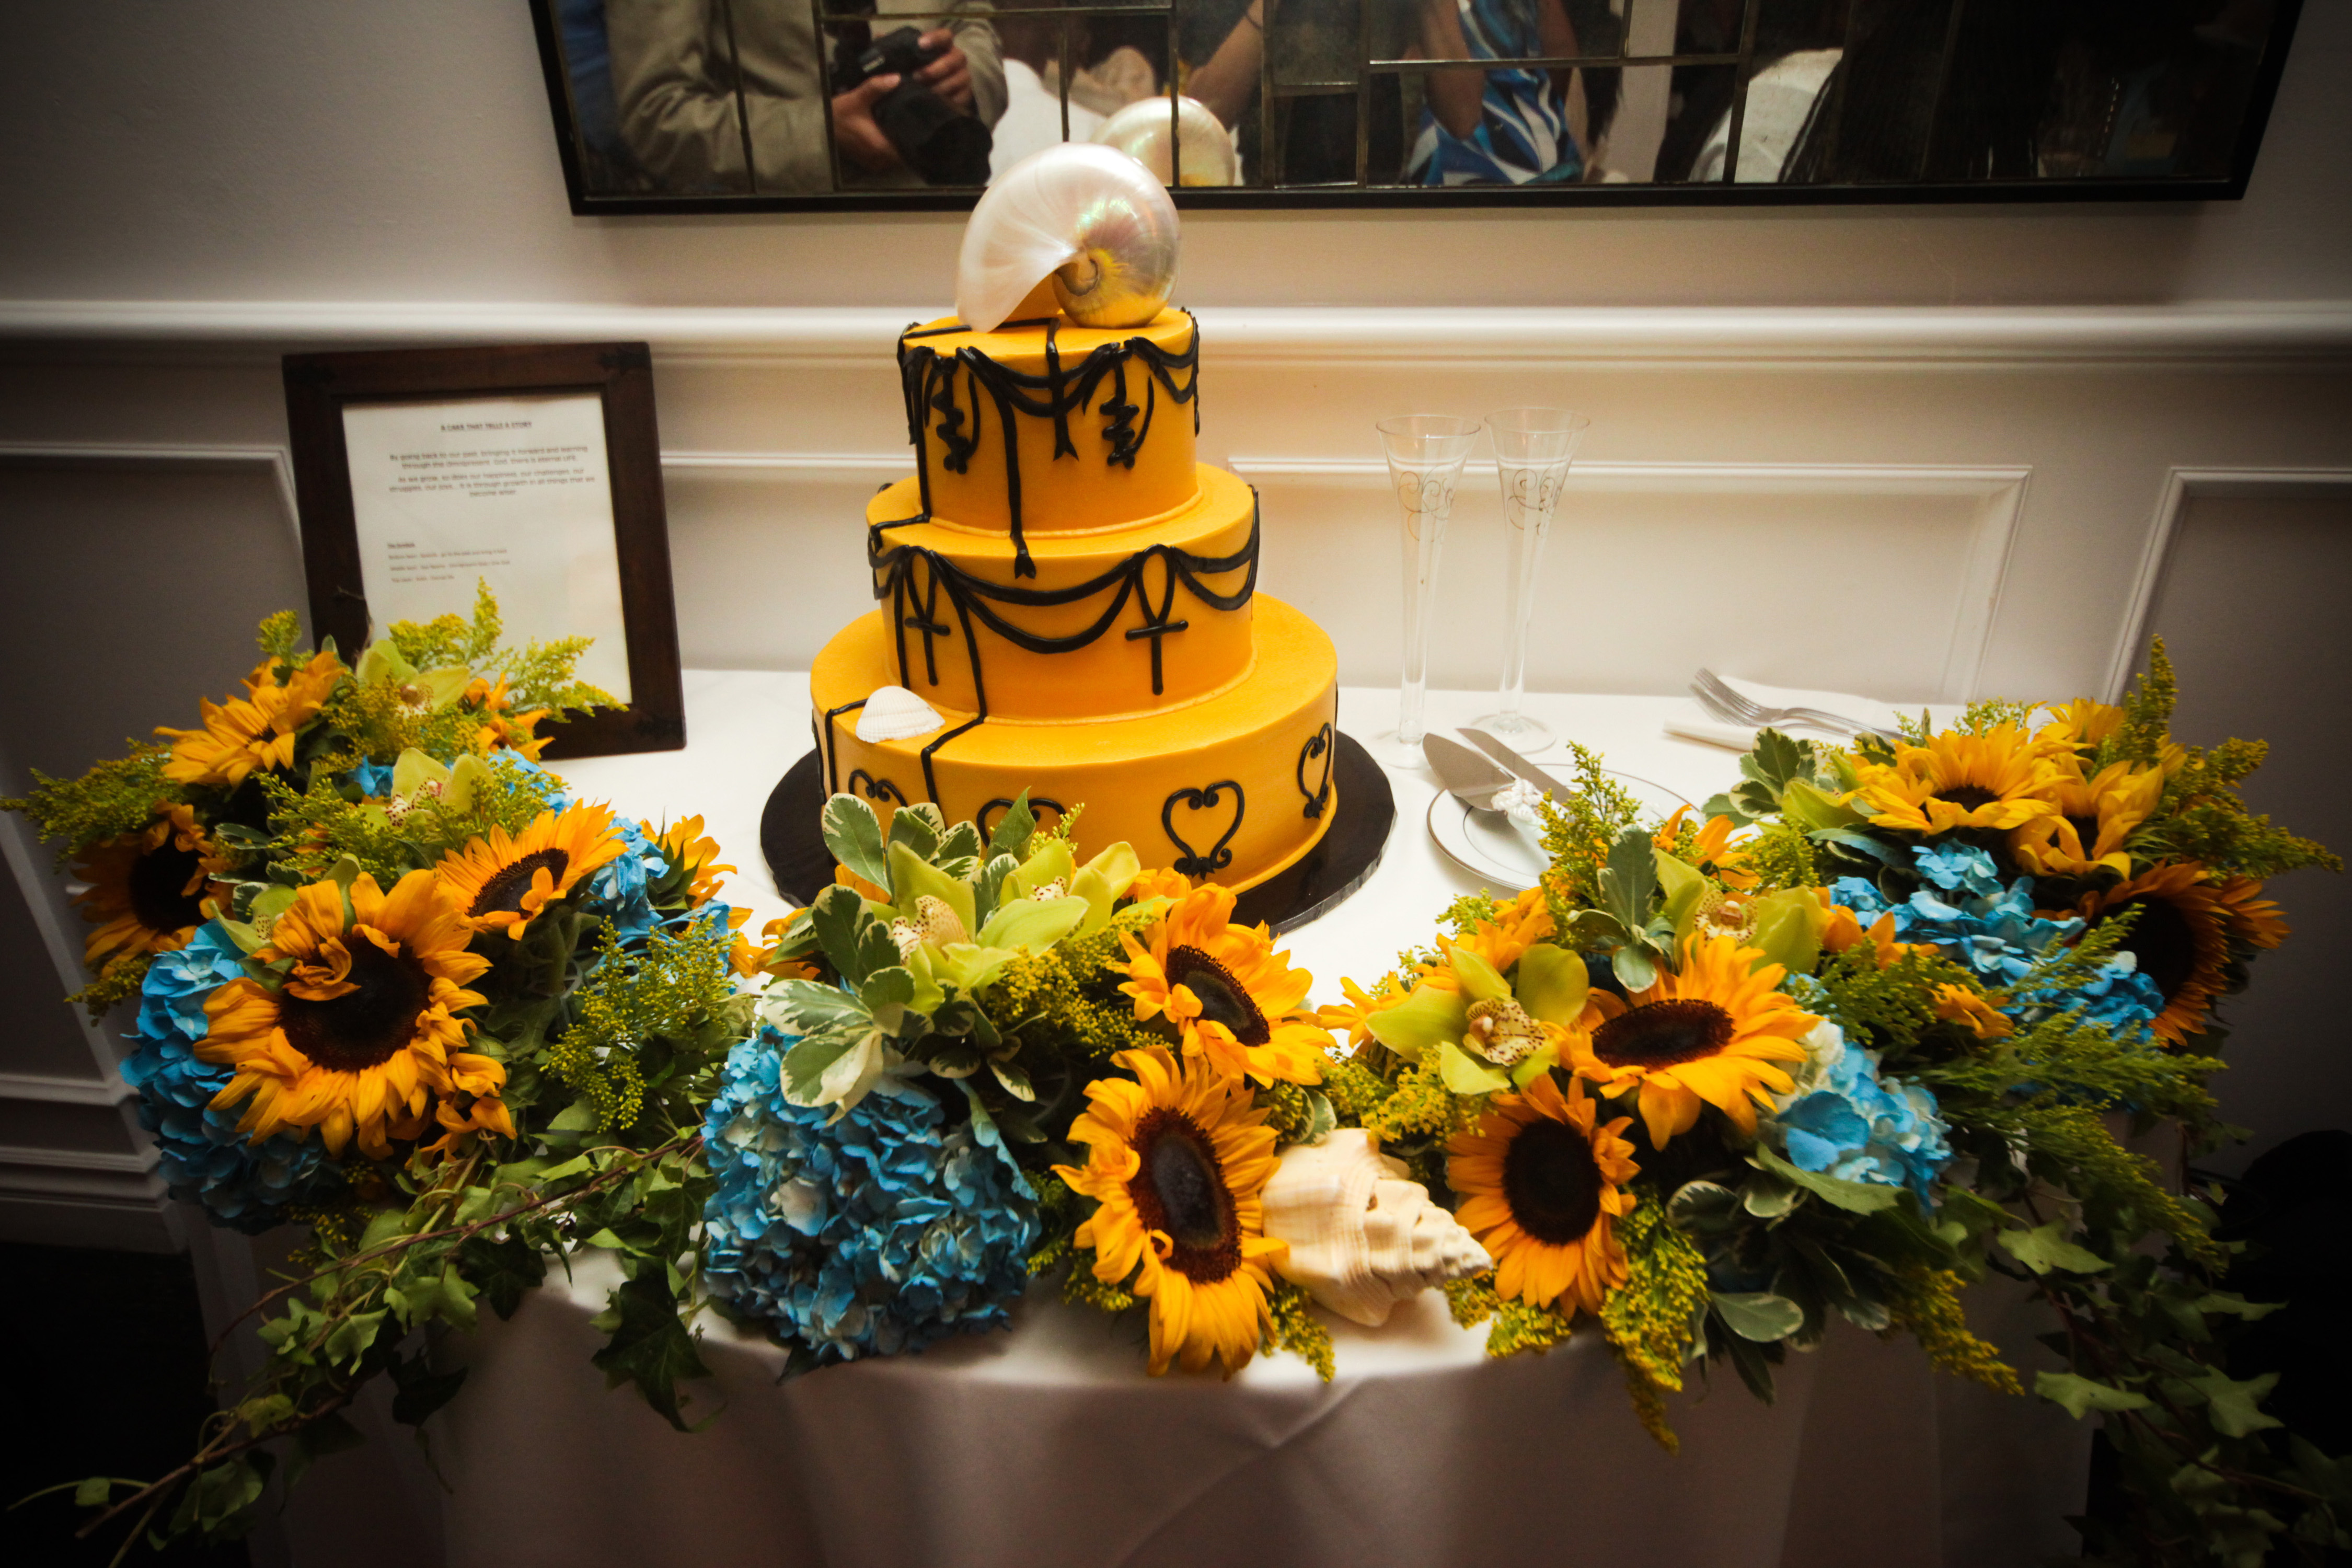 Cakes, yellow, brown, black, gold, cake, Theme, African, Symbols, Adinkra